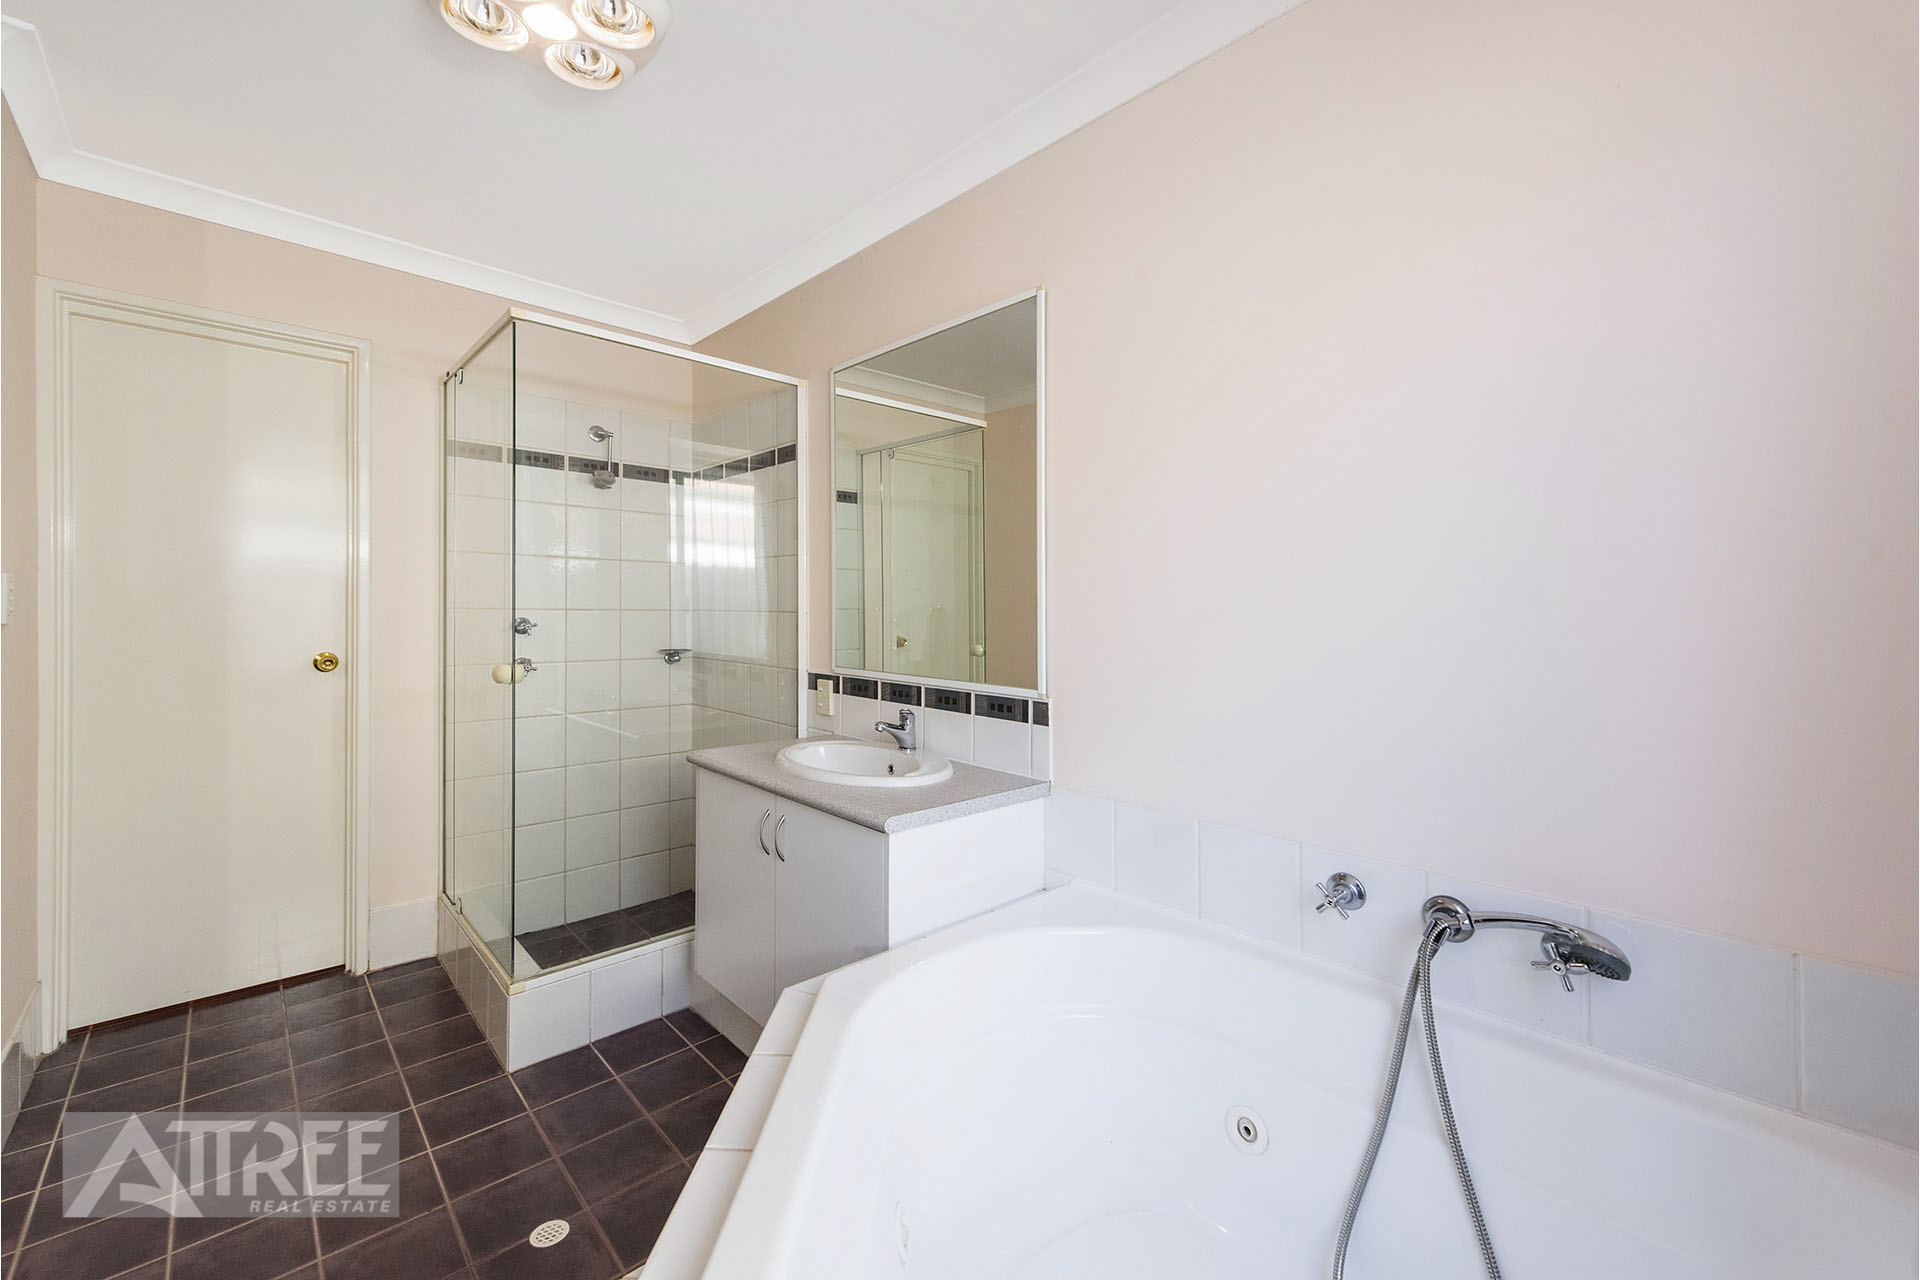 Property for sale in SEVILLE GROVE, 11 Salamanca Boulevard : Attree Real Estate